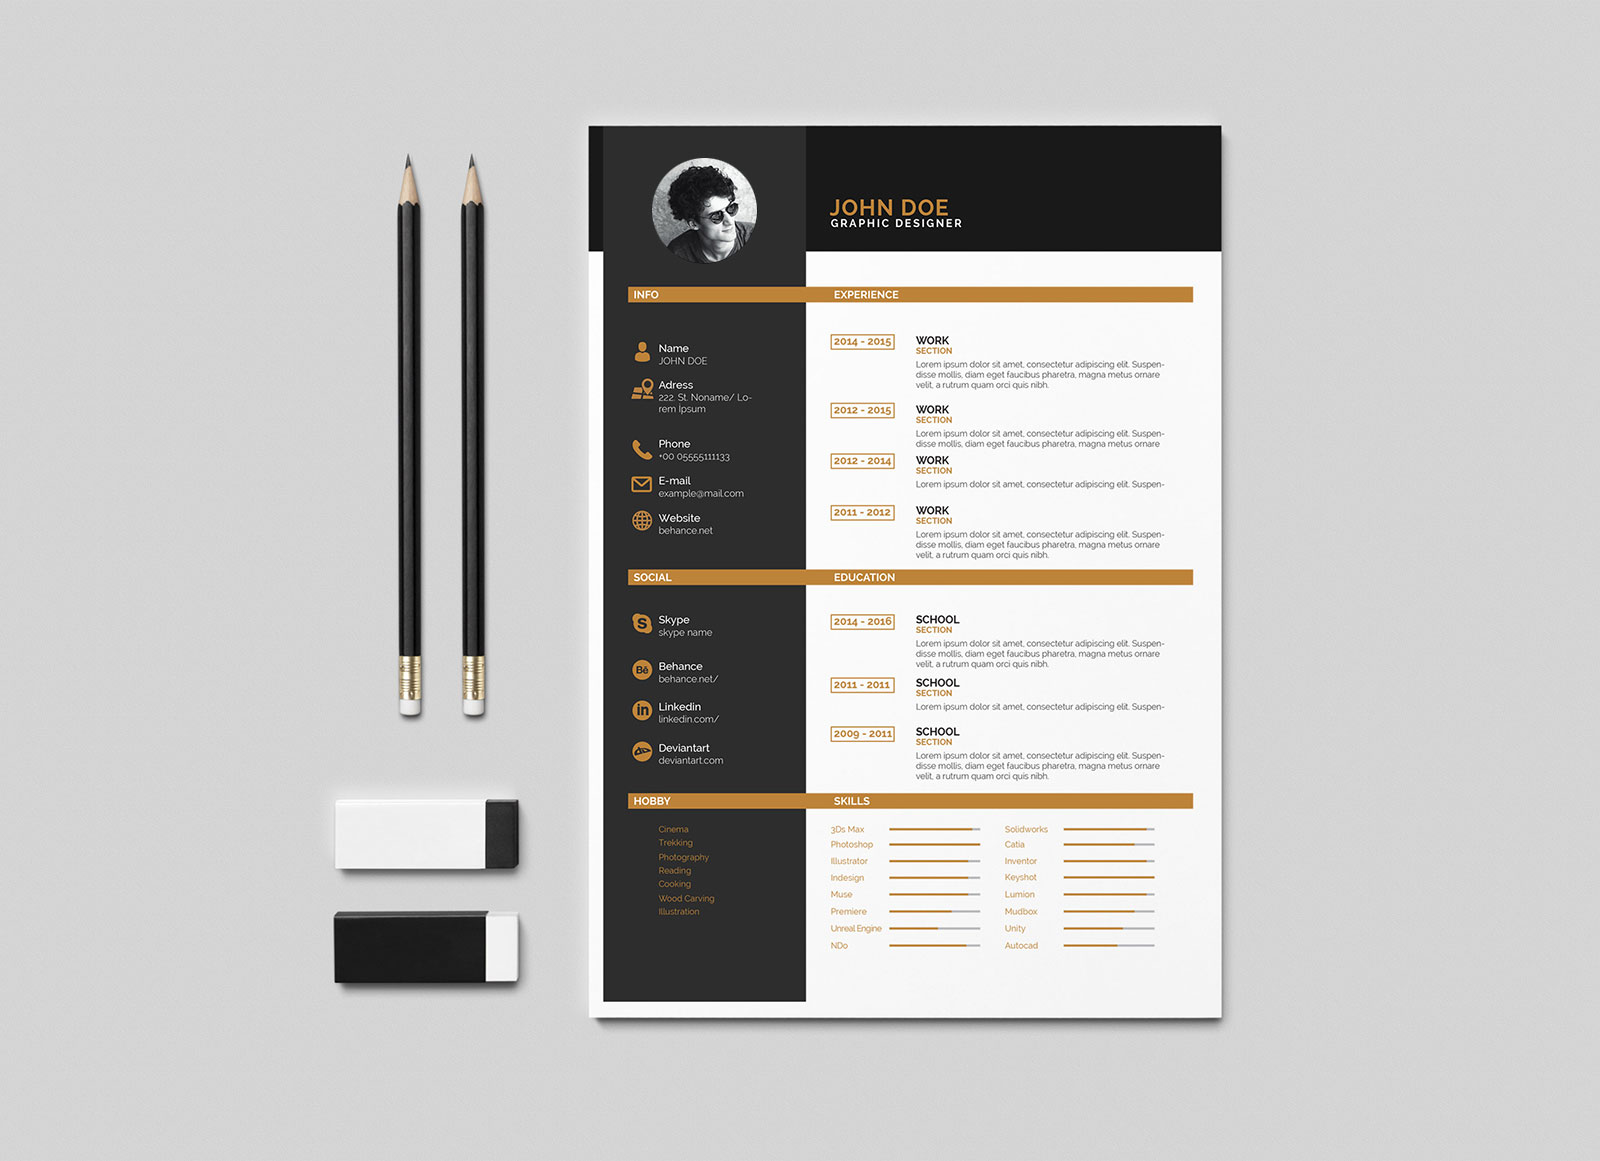 Free-Clean-Two-Color-Resume-Template-in-Indesign-INDD-Format